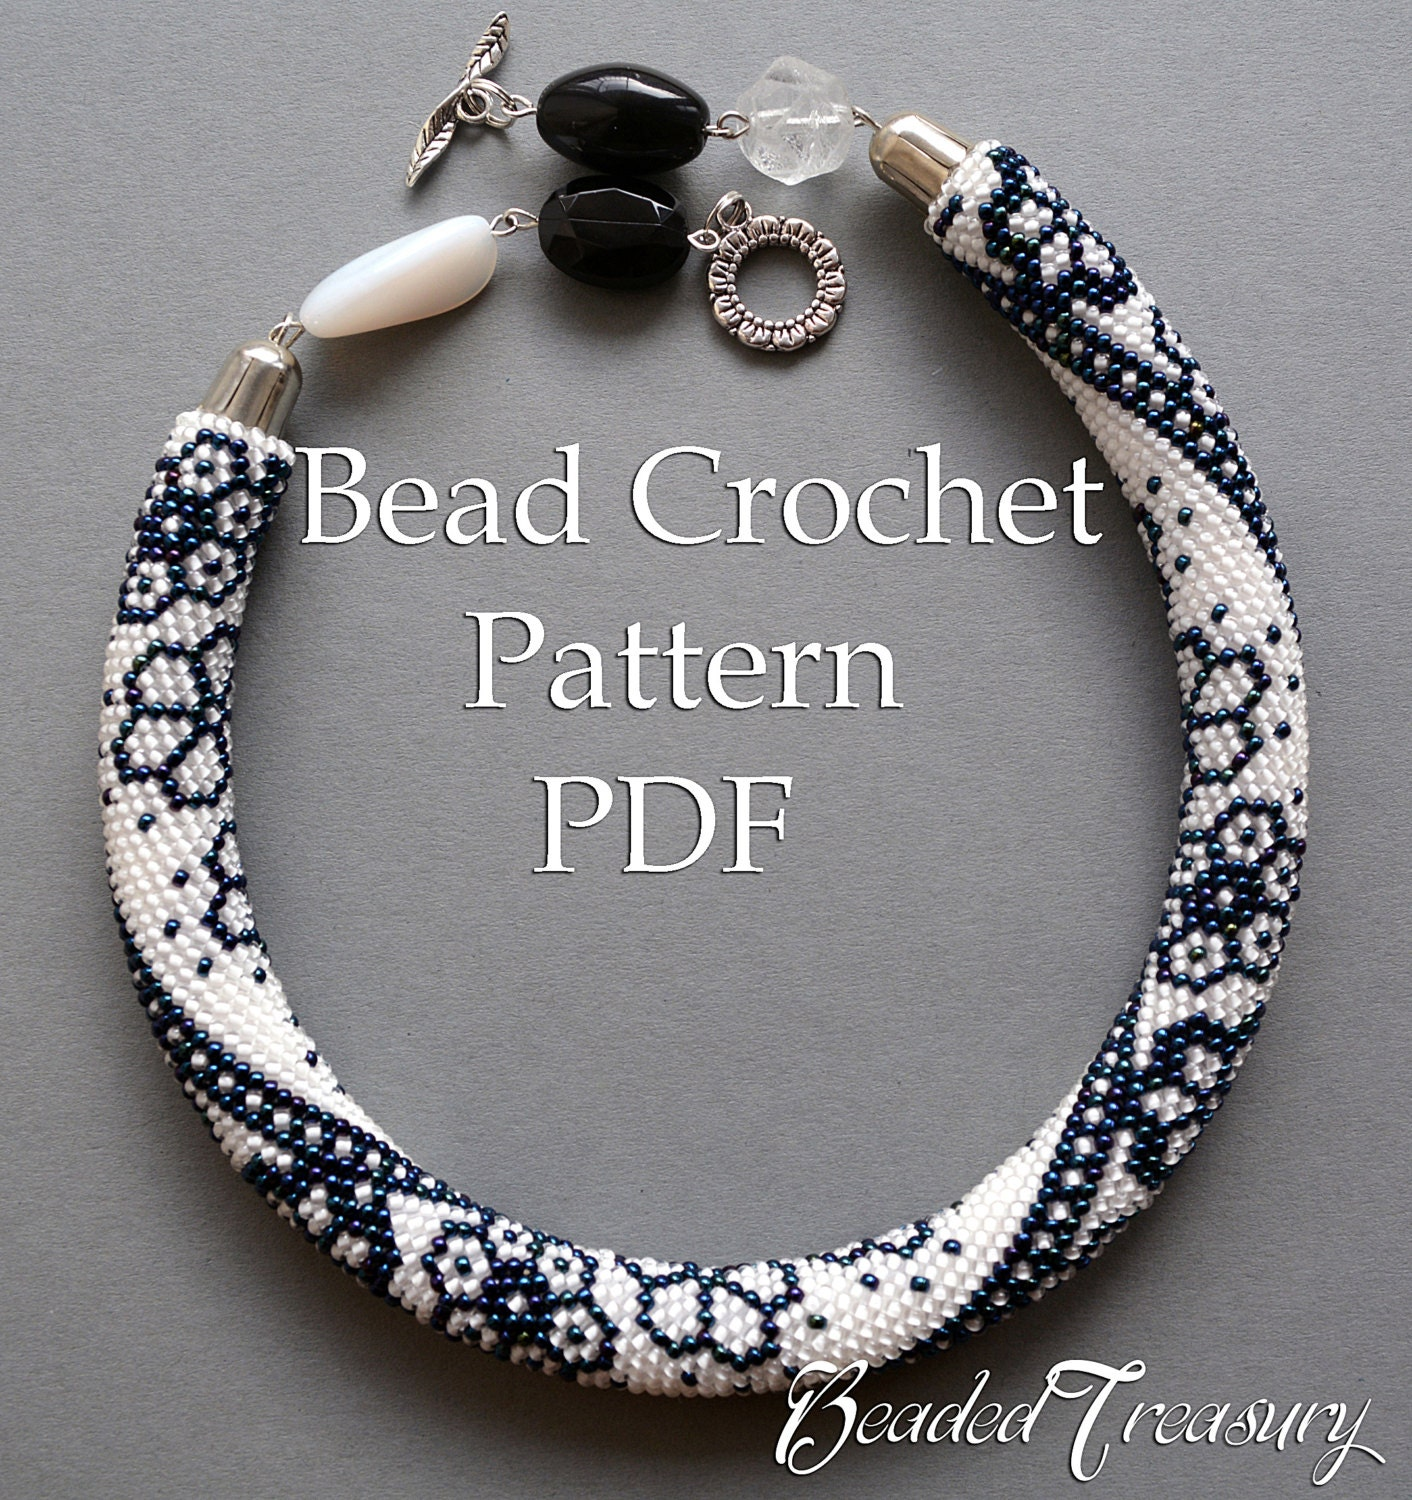 Winter Lace Bead Crochet Pattern Beaded Flowers Necklace Seed Etsy